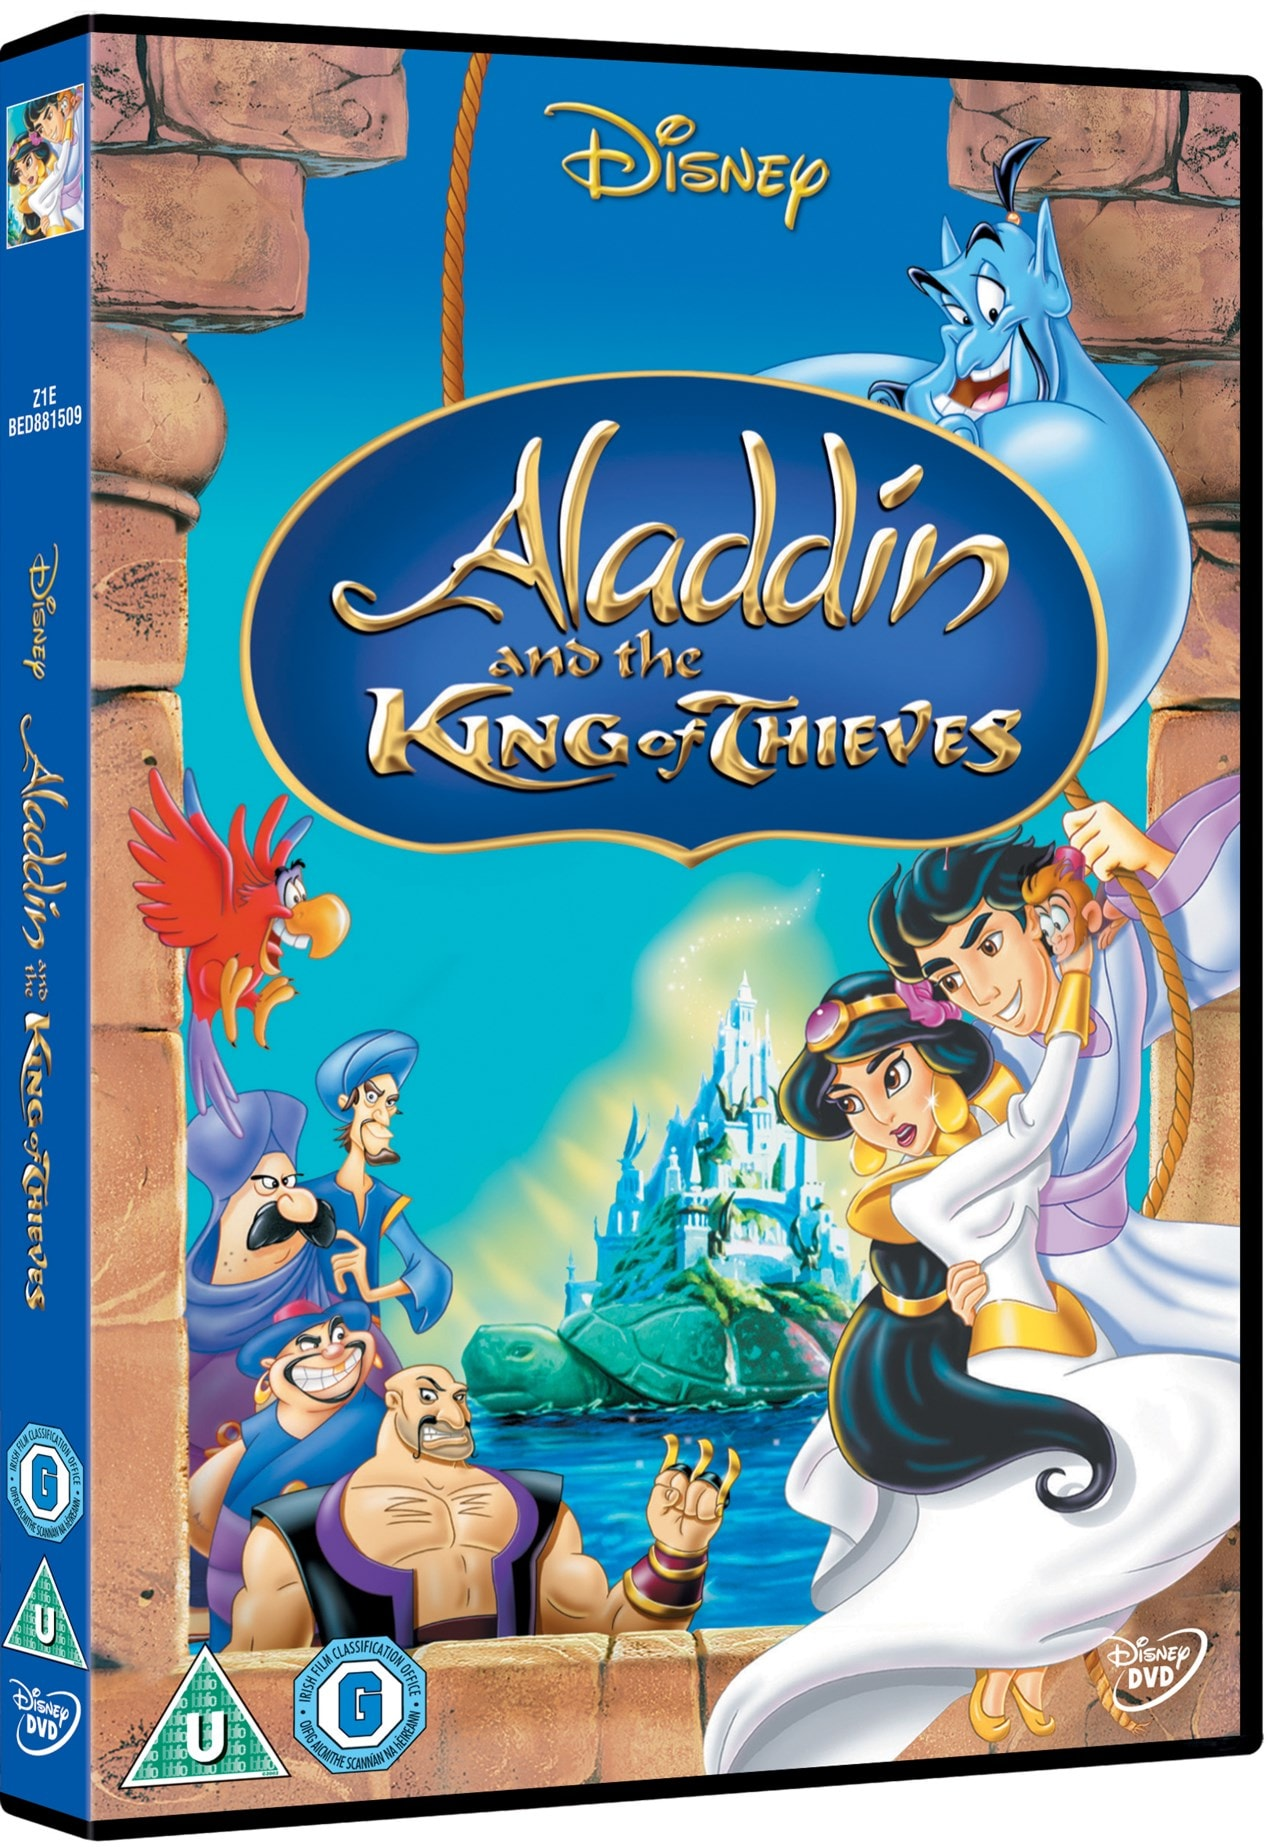 Aladdin And The King Of Thieves Dvd Free Shipping Over 20 Hmv Store